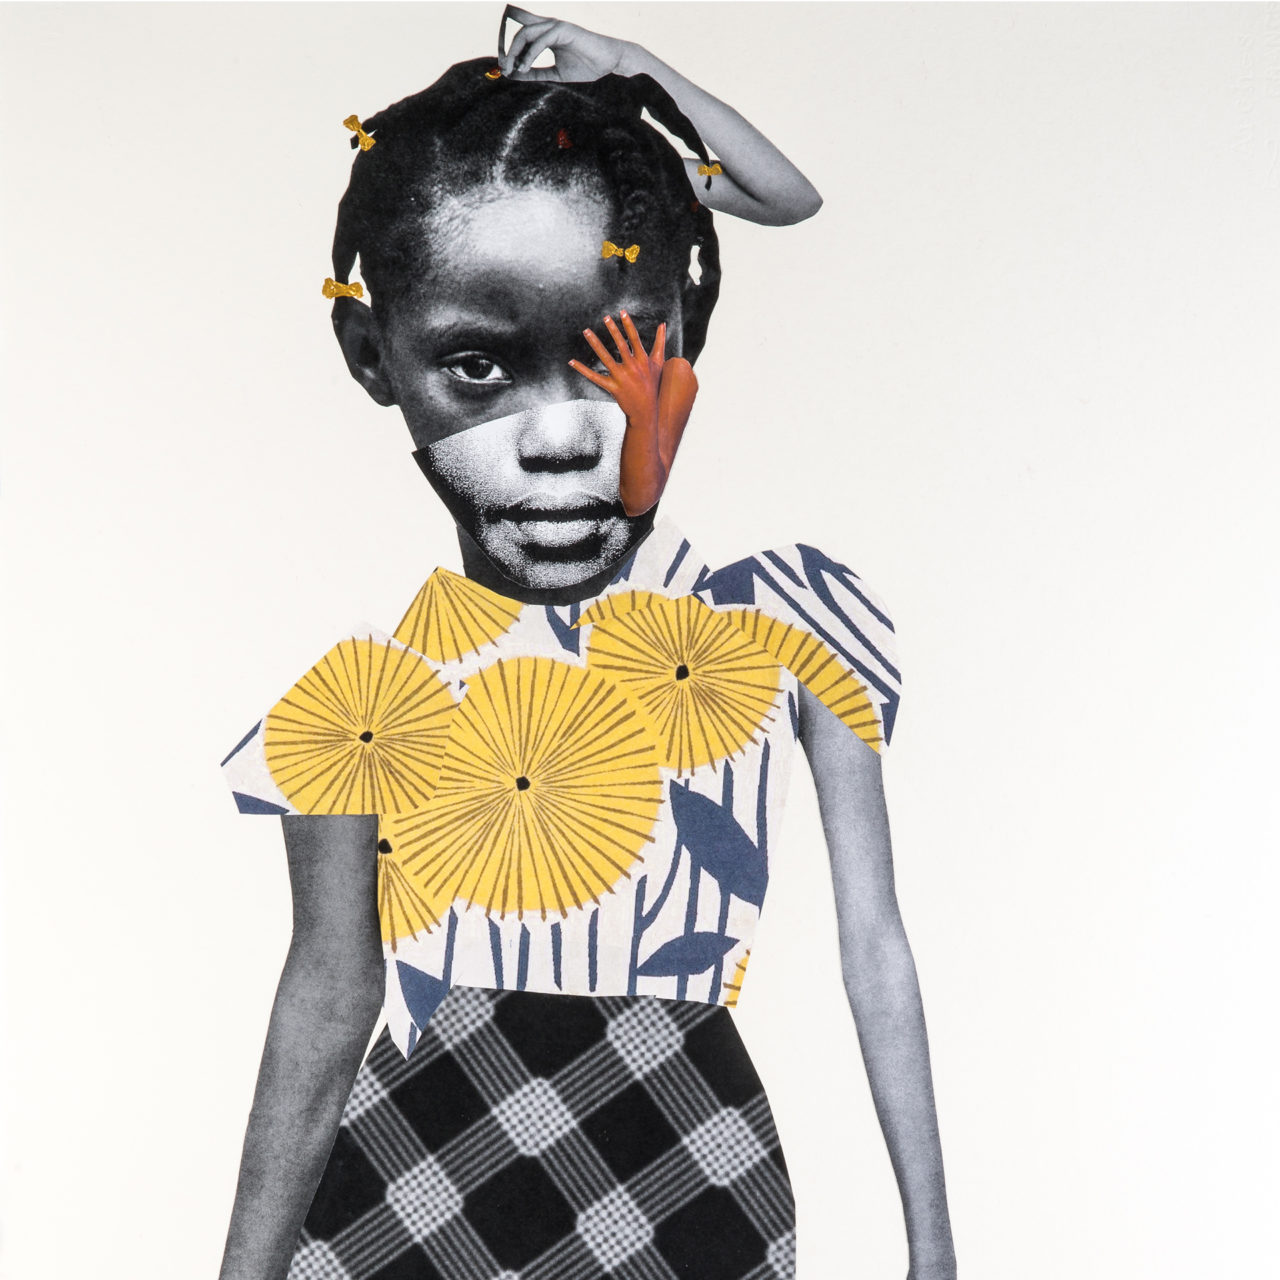 Untitled, 2017 by Deborah Roberts, mixed media on paper, 30 x 22 inches. Photo Credit: Philip Roger. Image courtesy of  MASS MoCA